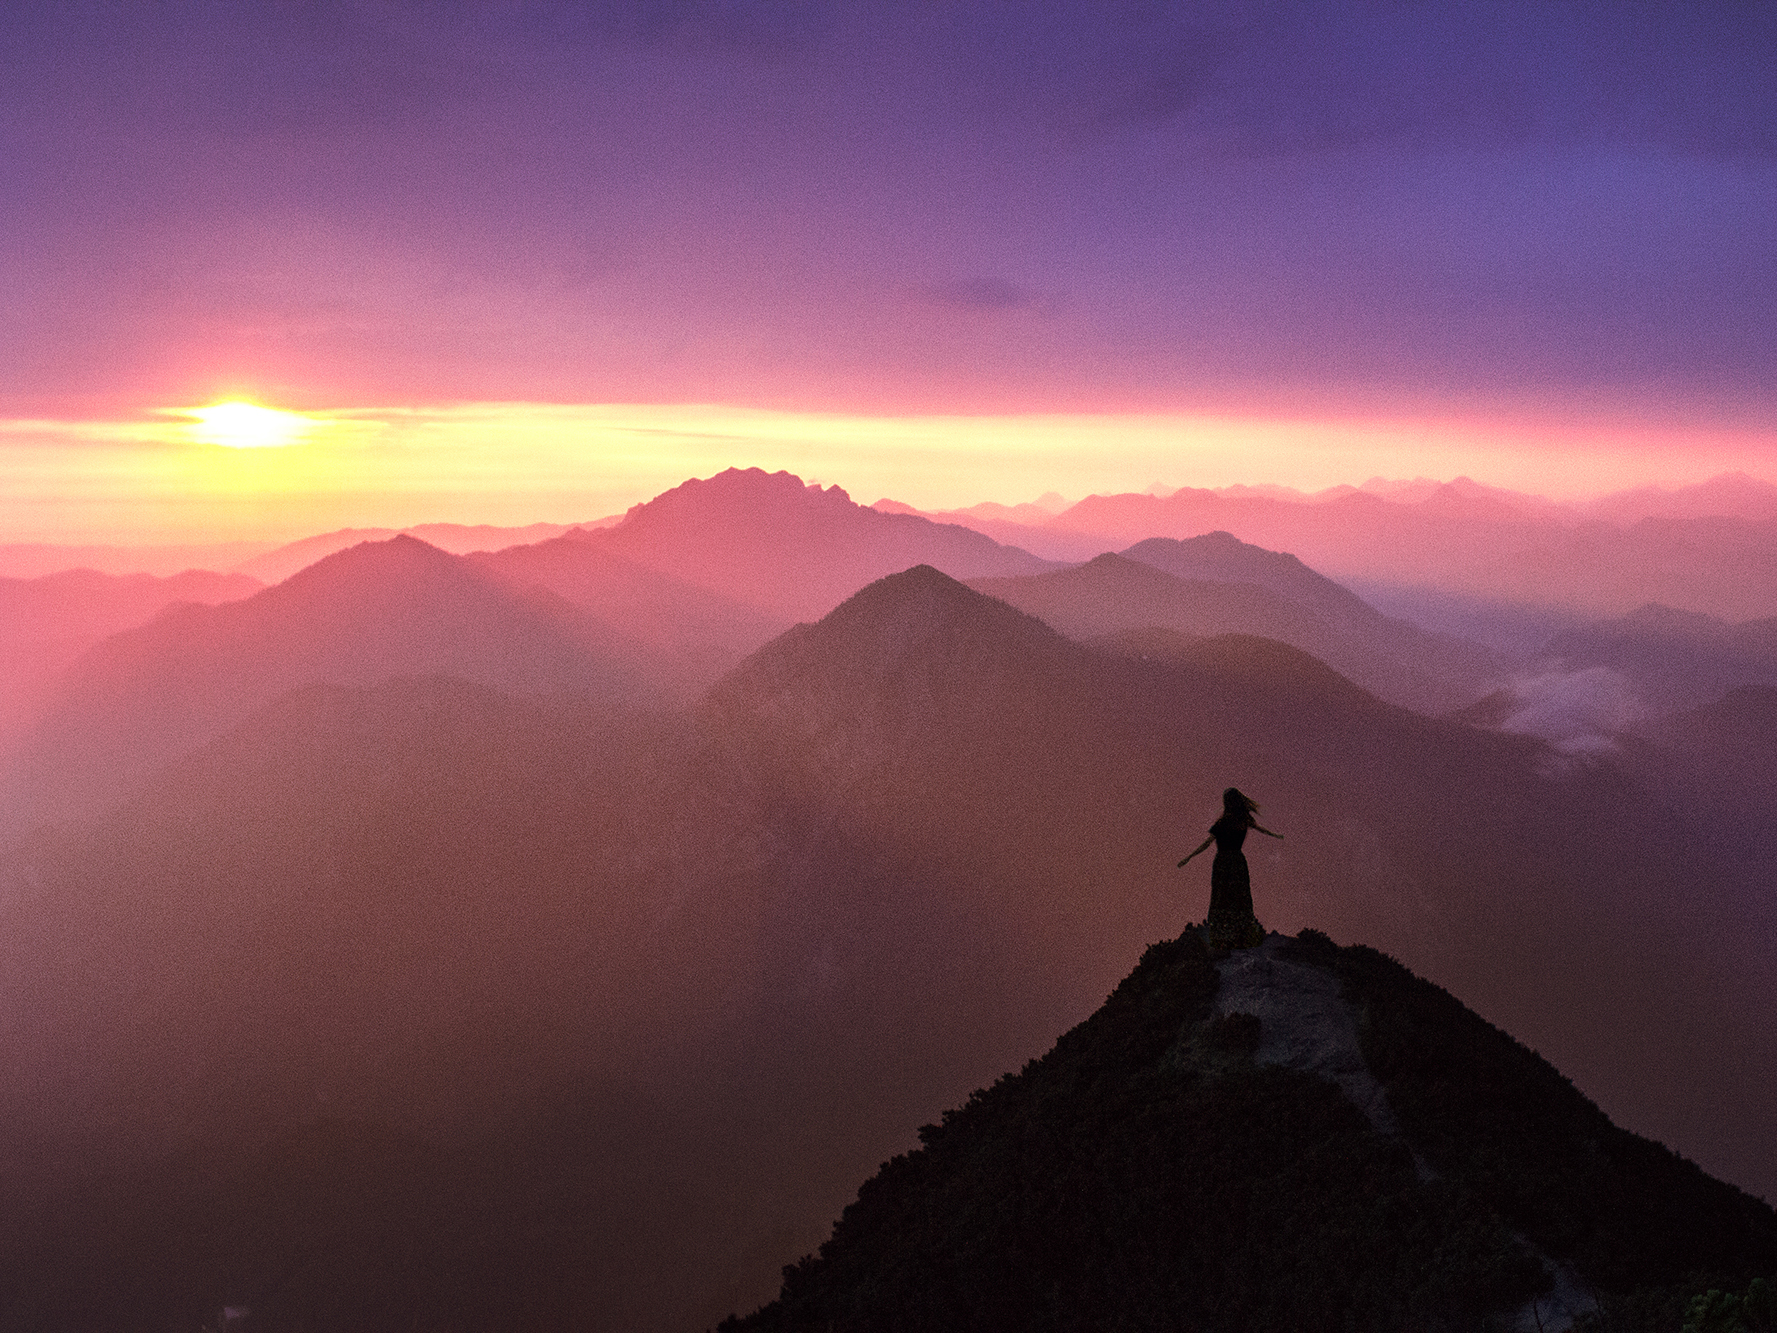 Layers of mountains at sunrise with a small person enjoying the freedom.